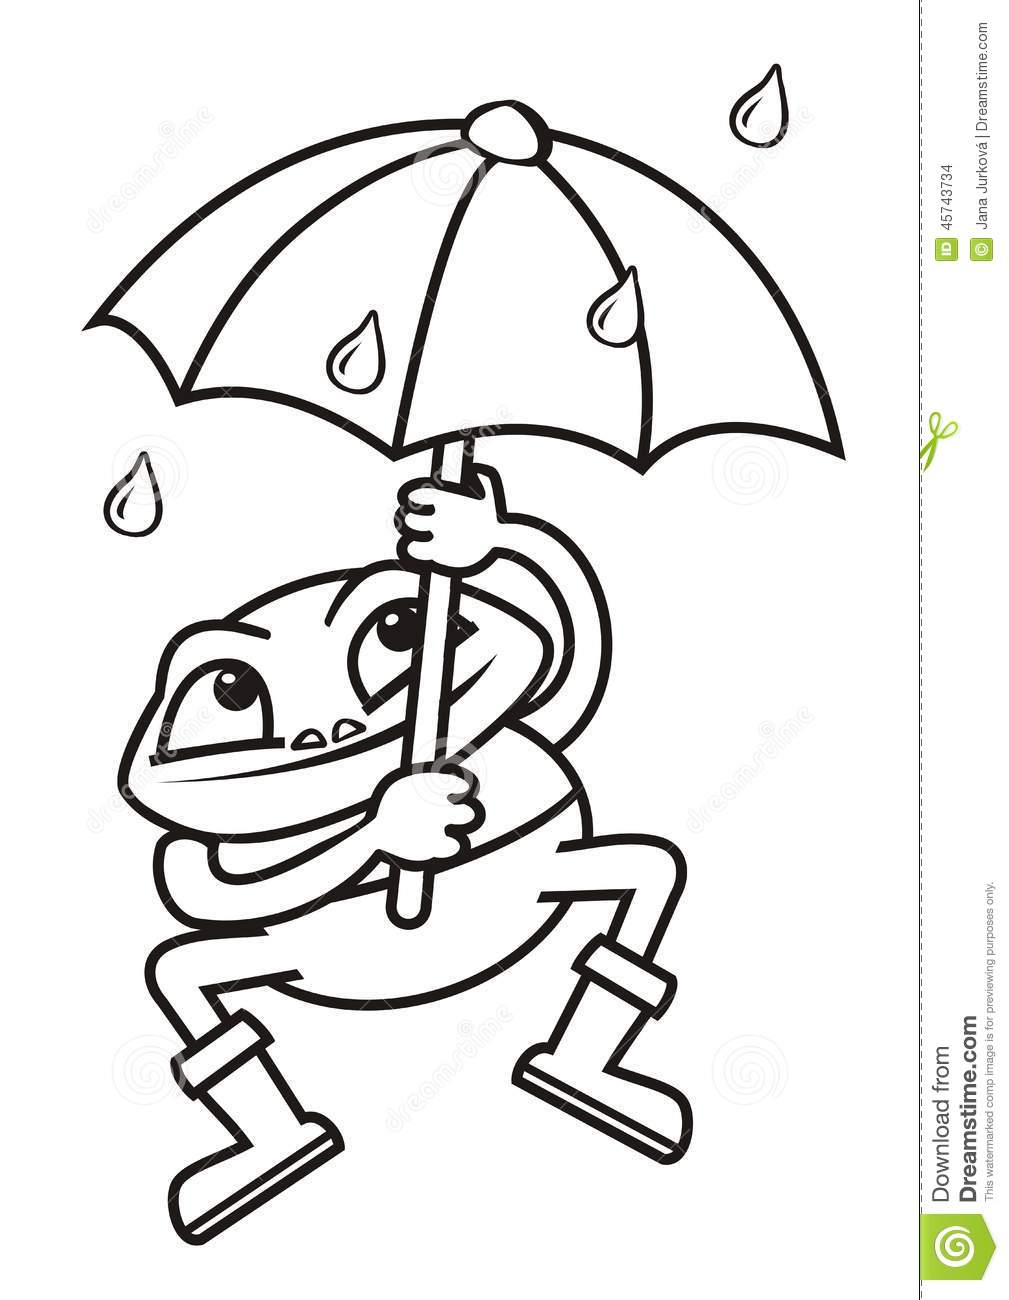 frog and umbrella coloring stock vector image 45743734